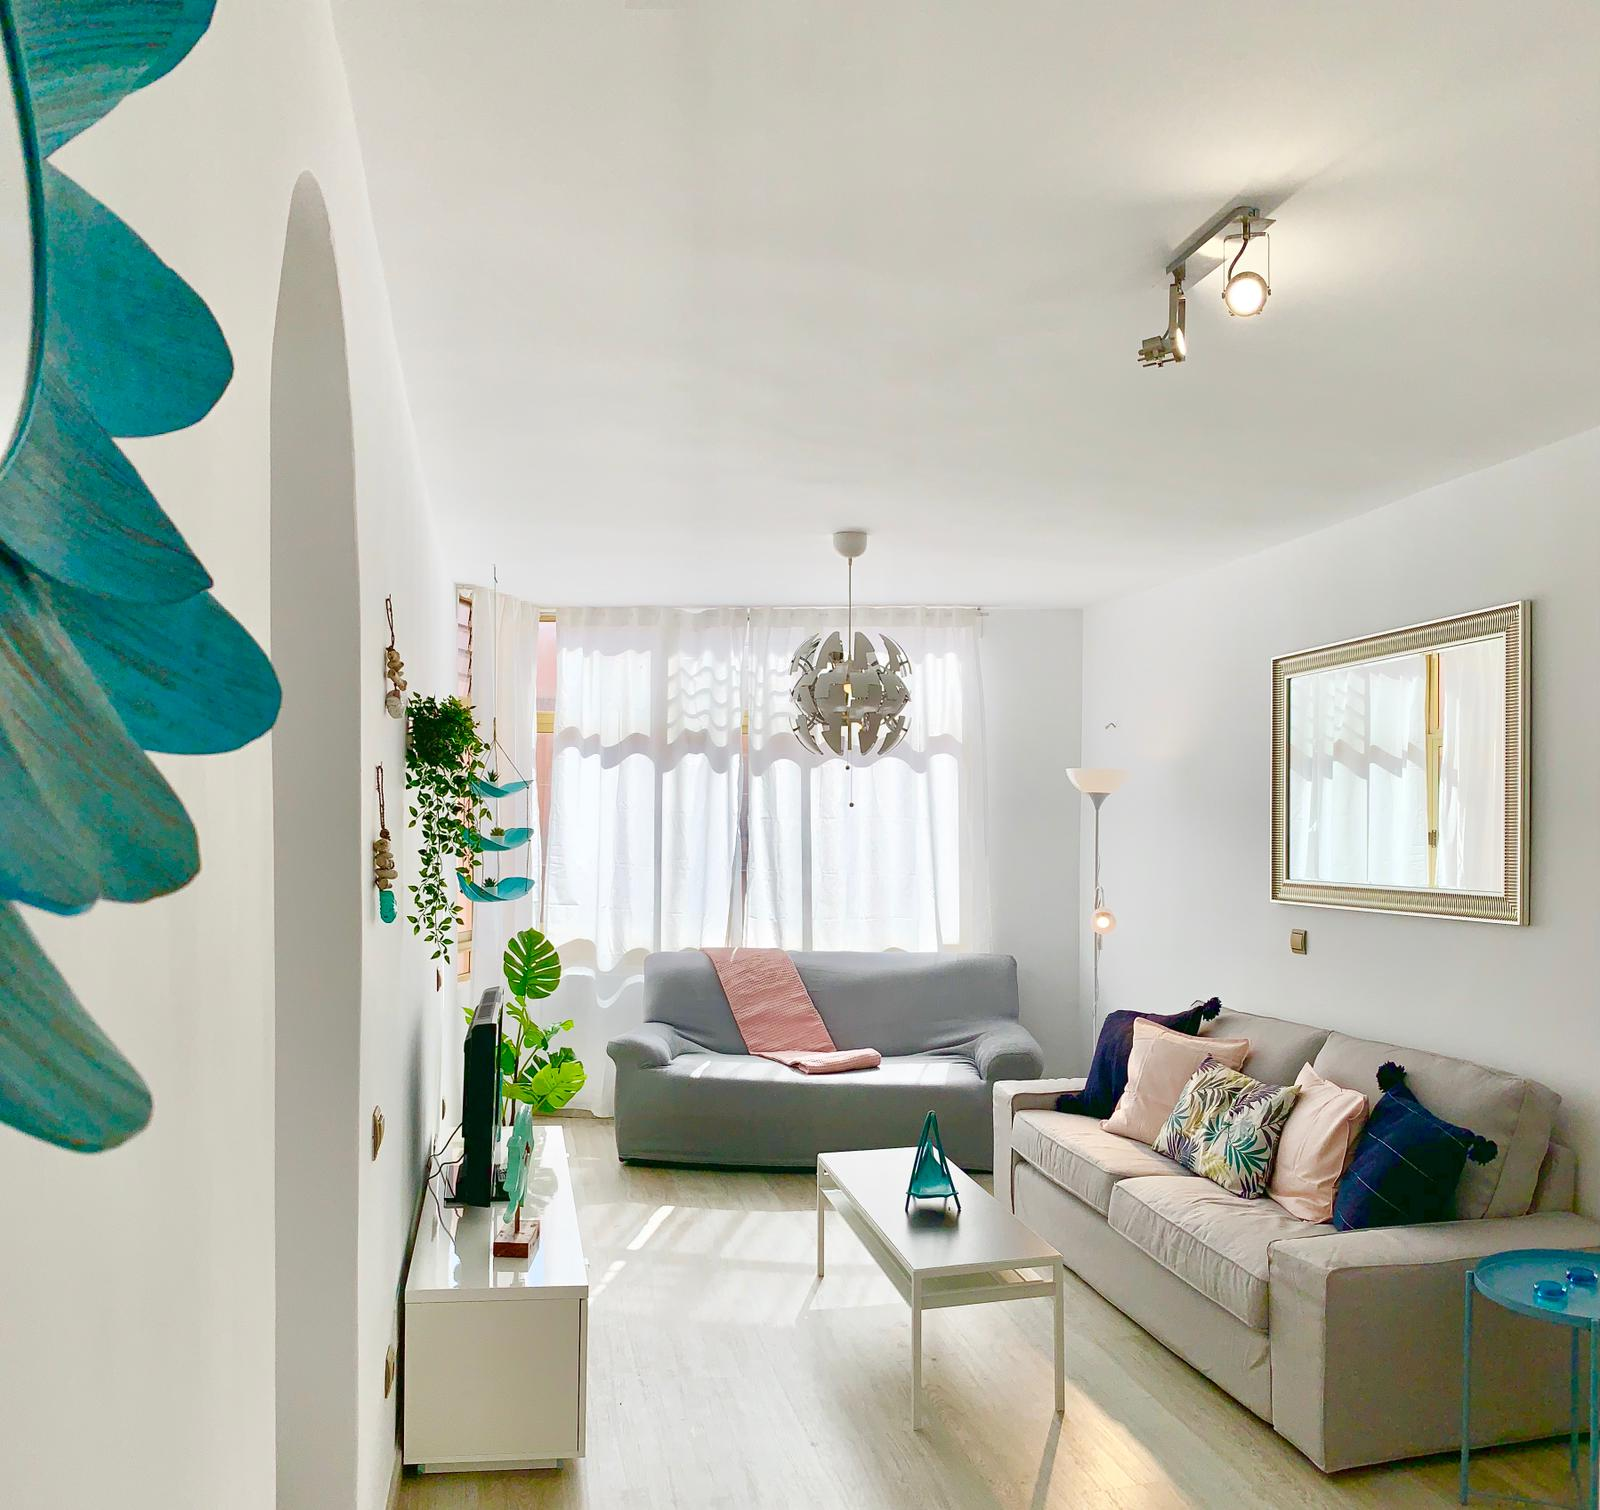 Modern and Refurbished Apartment